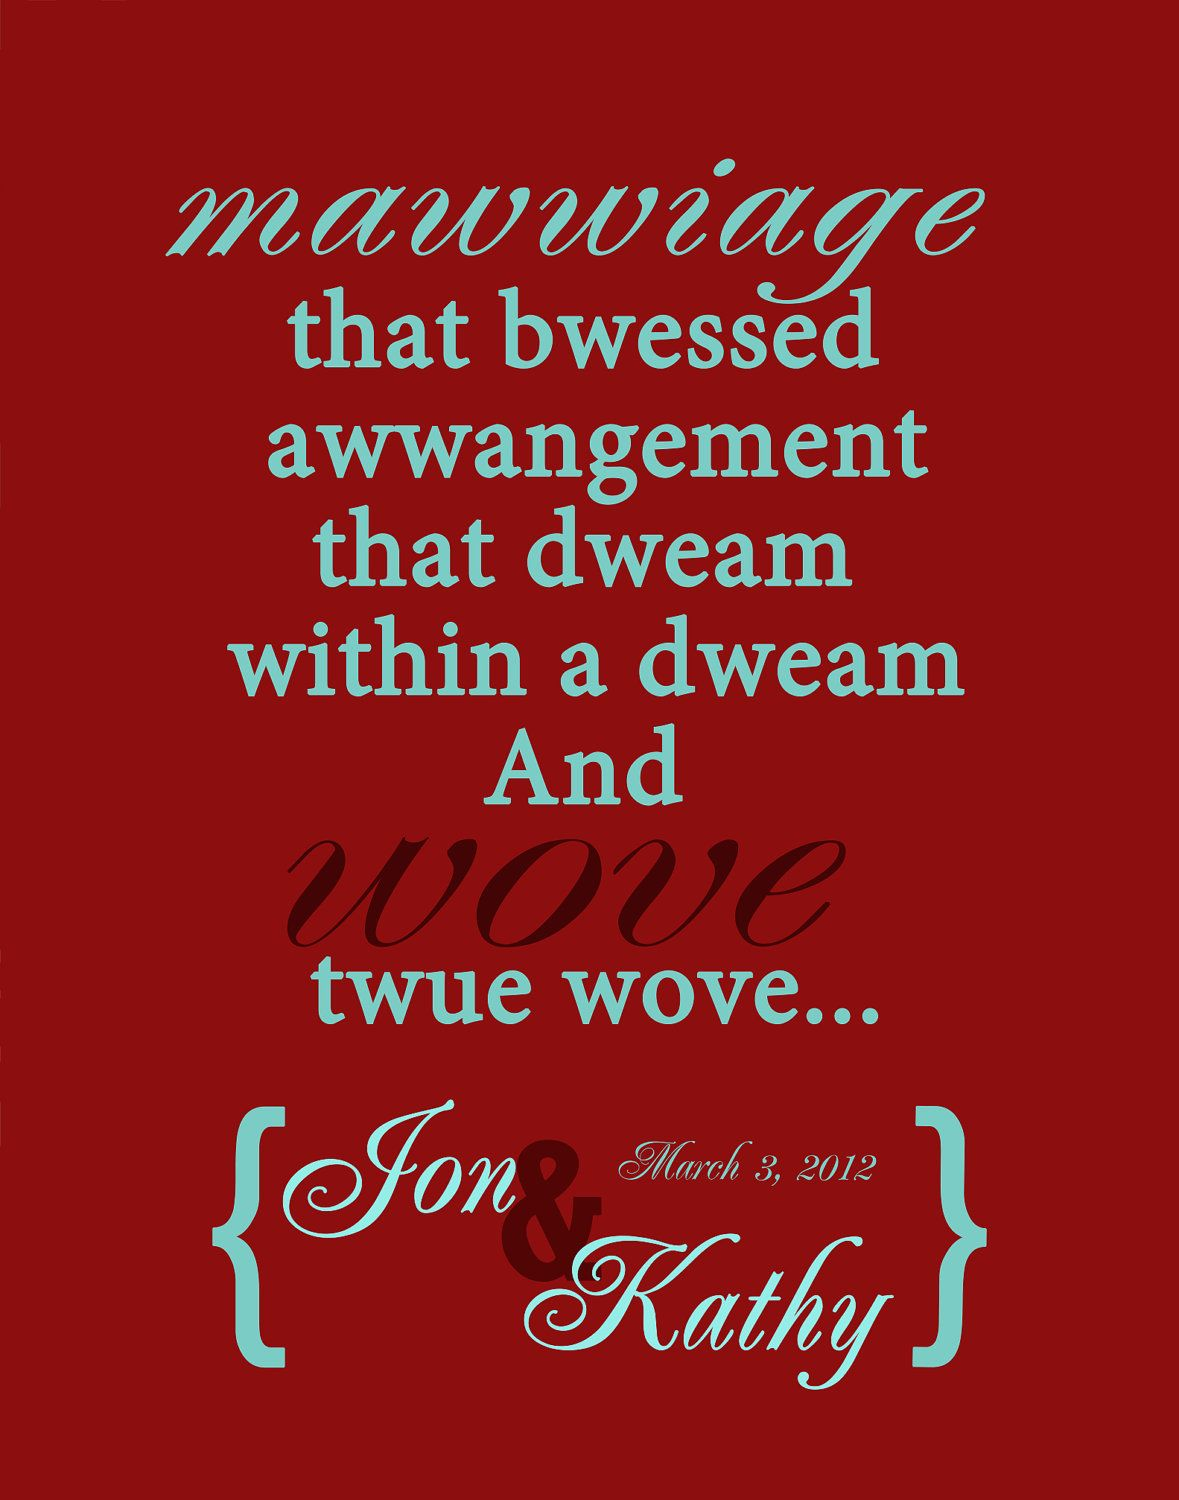 Personalizable princess bride wedding date funny quote poster ...